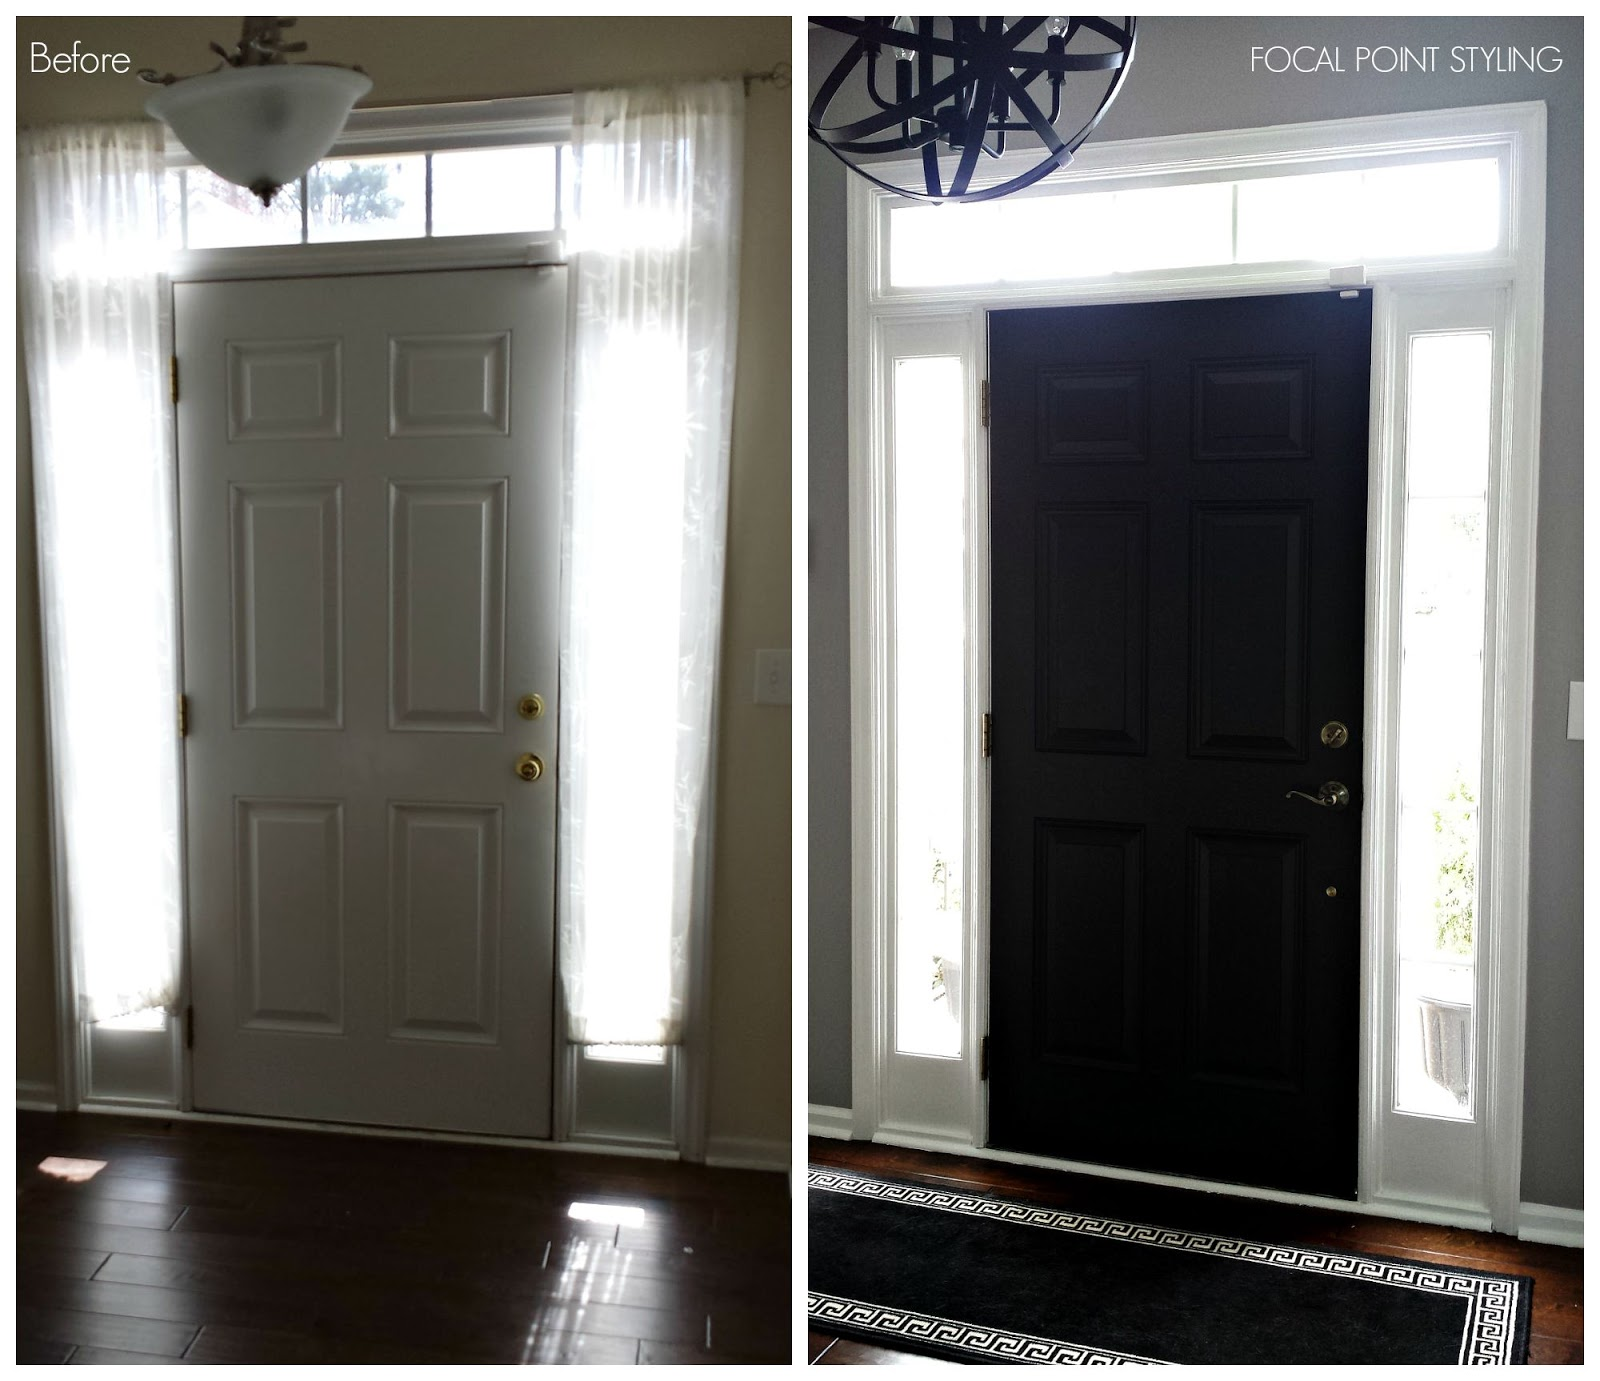 Beautiful FOCAL POINT STYLING: How To Paint Interior Doors Black U0026 Update Brass  Hardware Photo Gallery